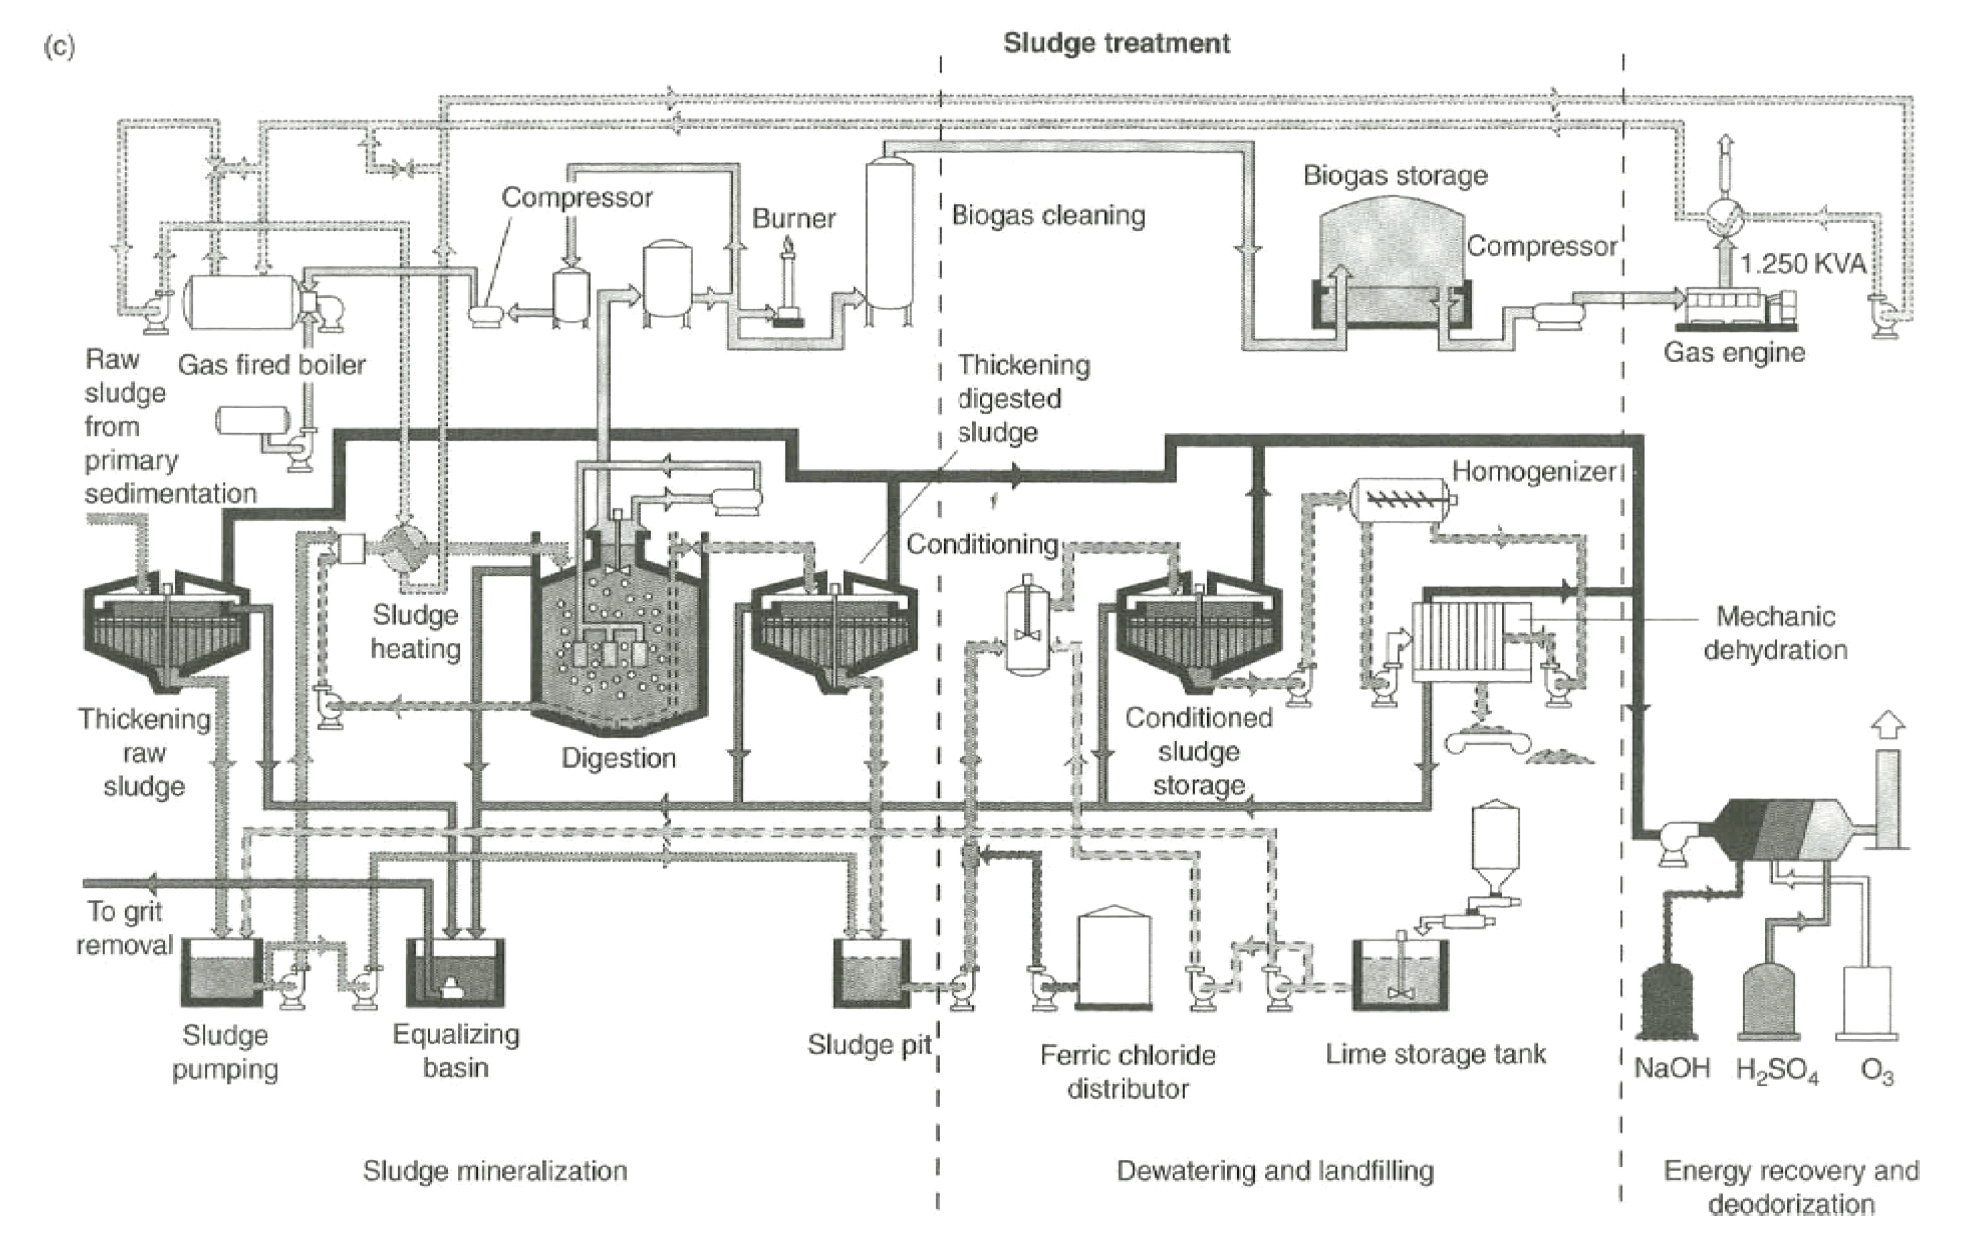 Process Flow Diagram For Wastewater Treatment Plant